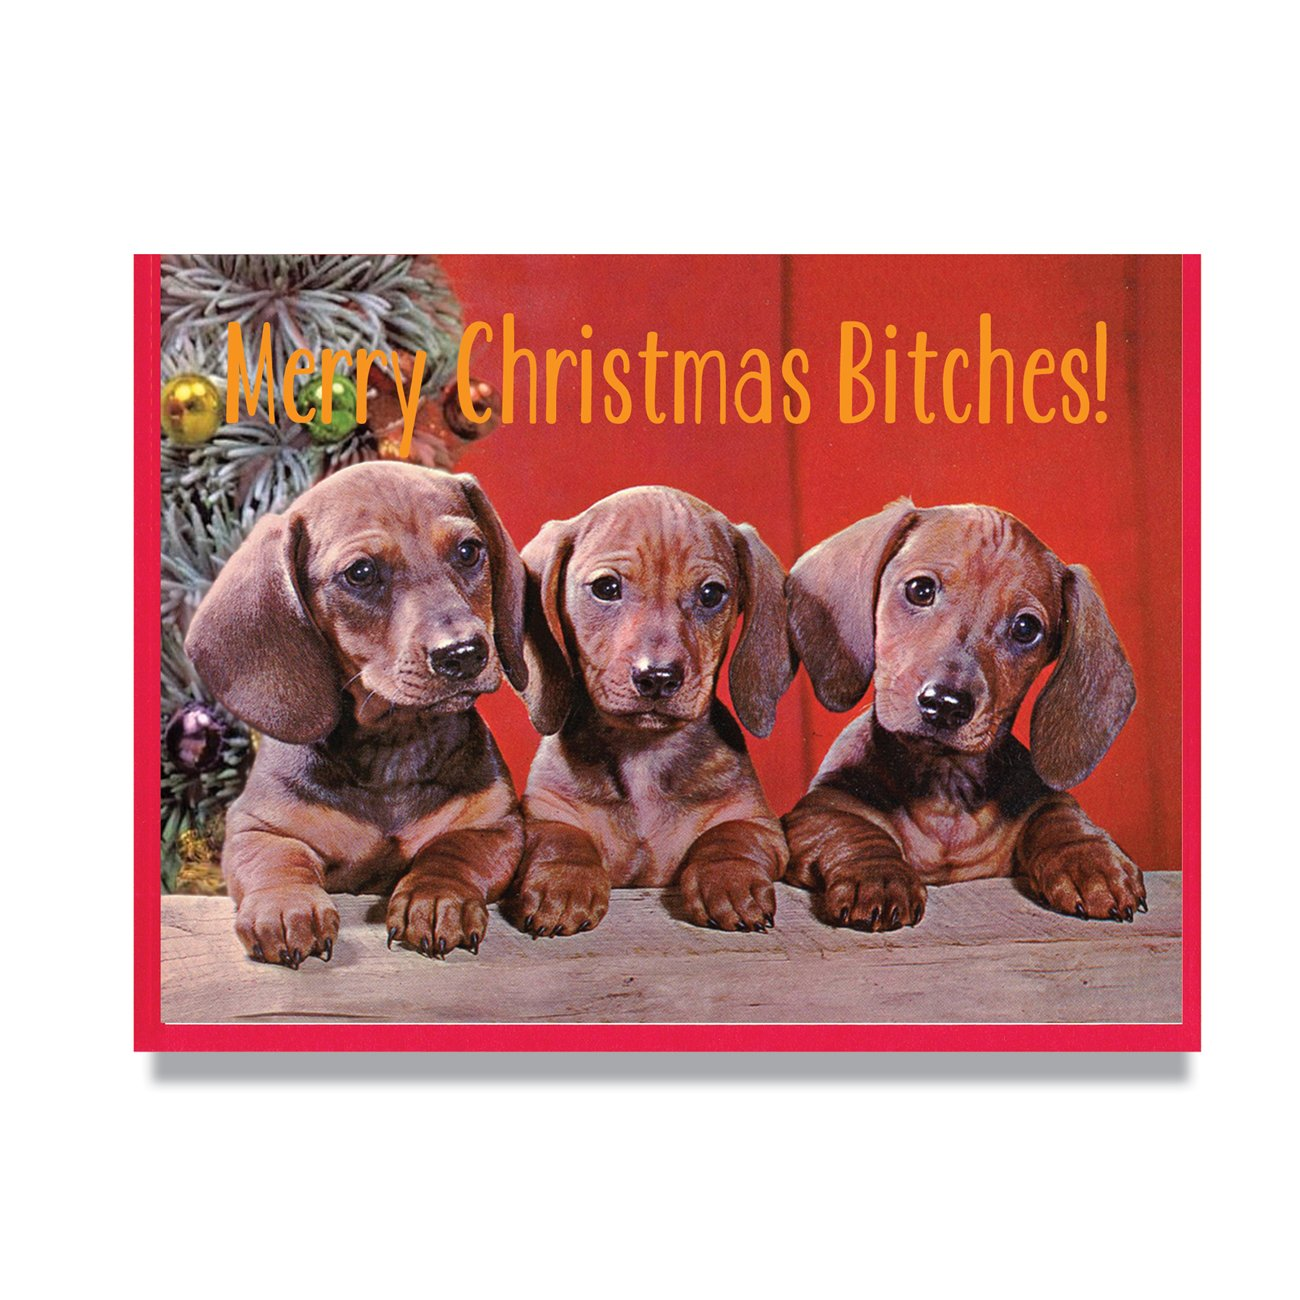 Merry Christmas Bitches Card